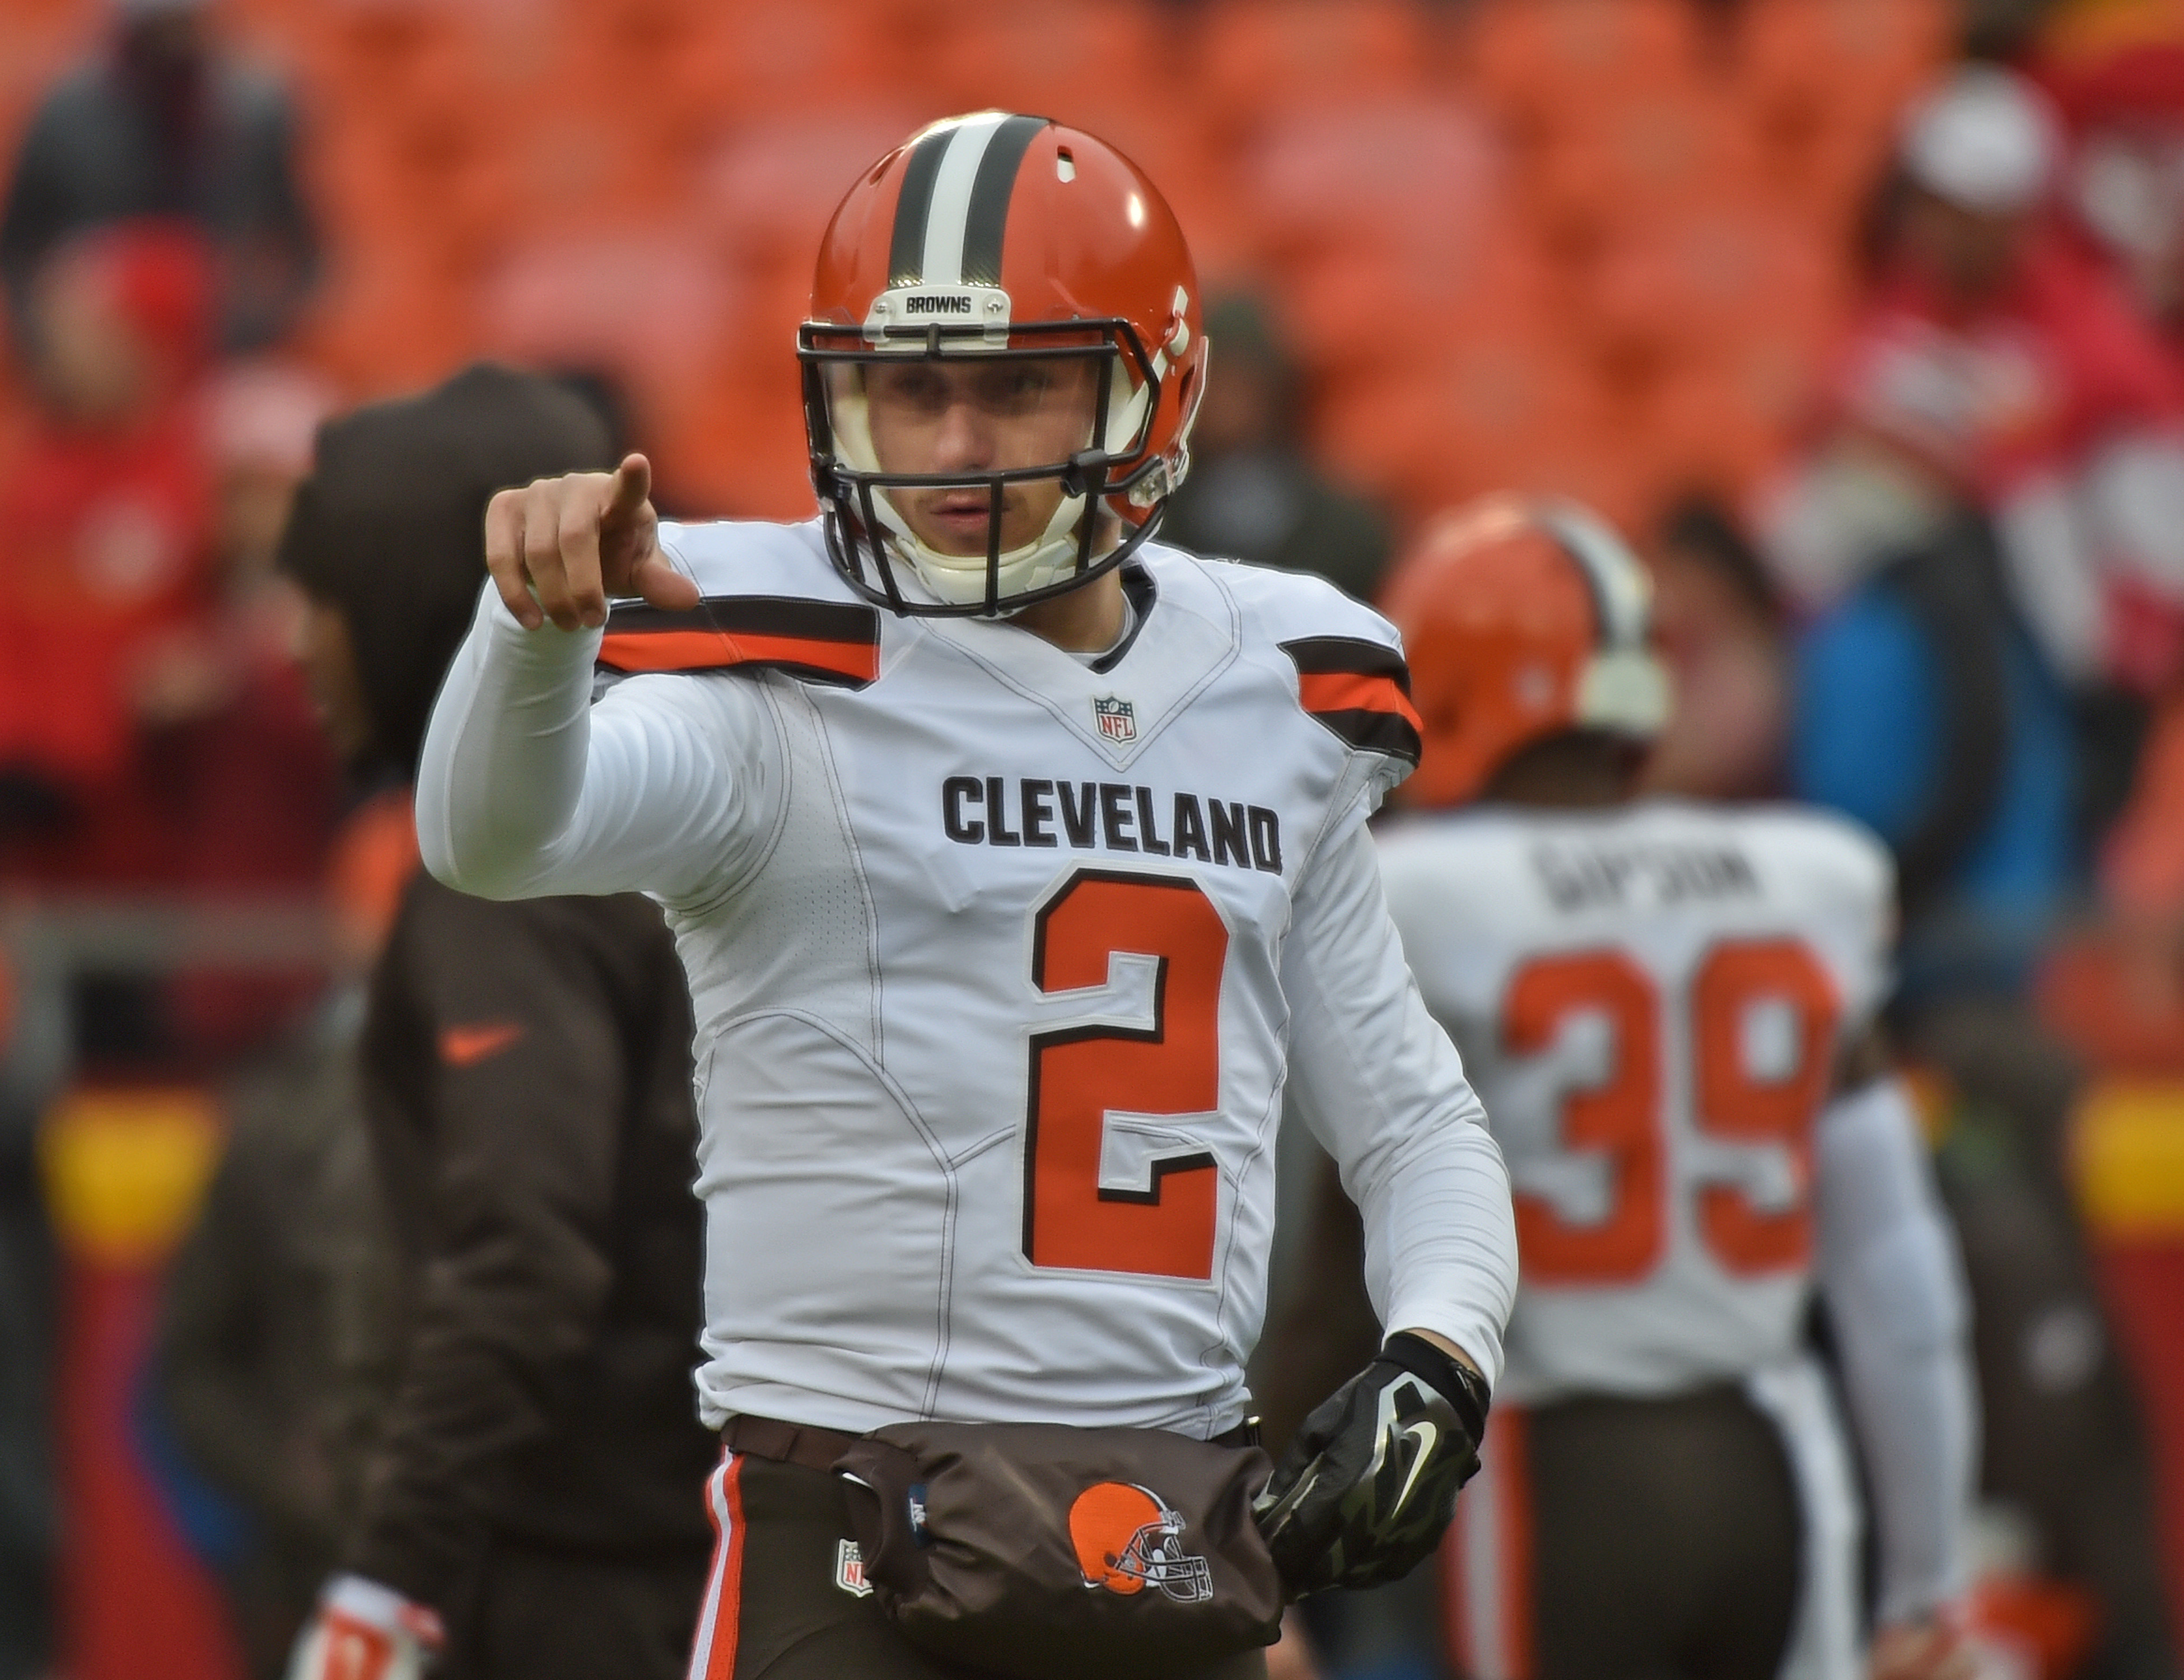 Johnny Manziel: 'I never really gave Cleveland a chance'